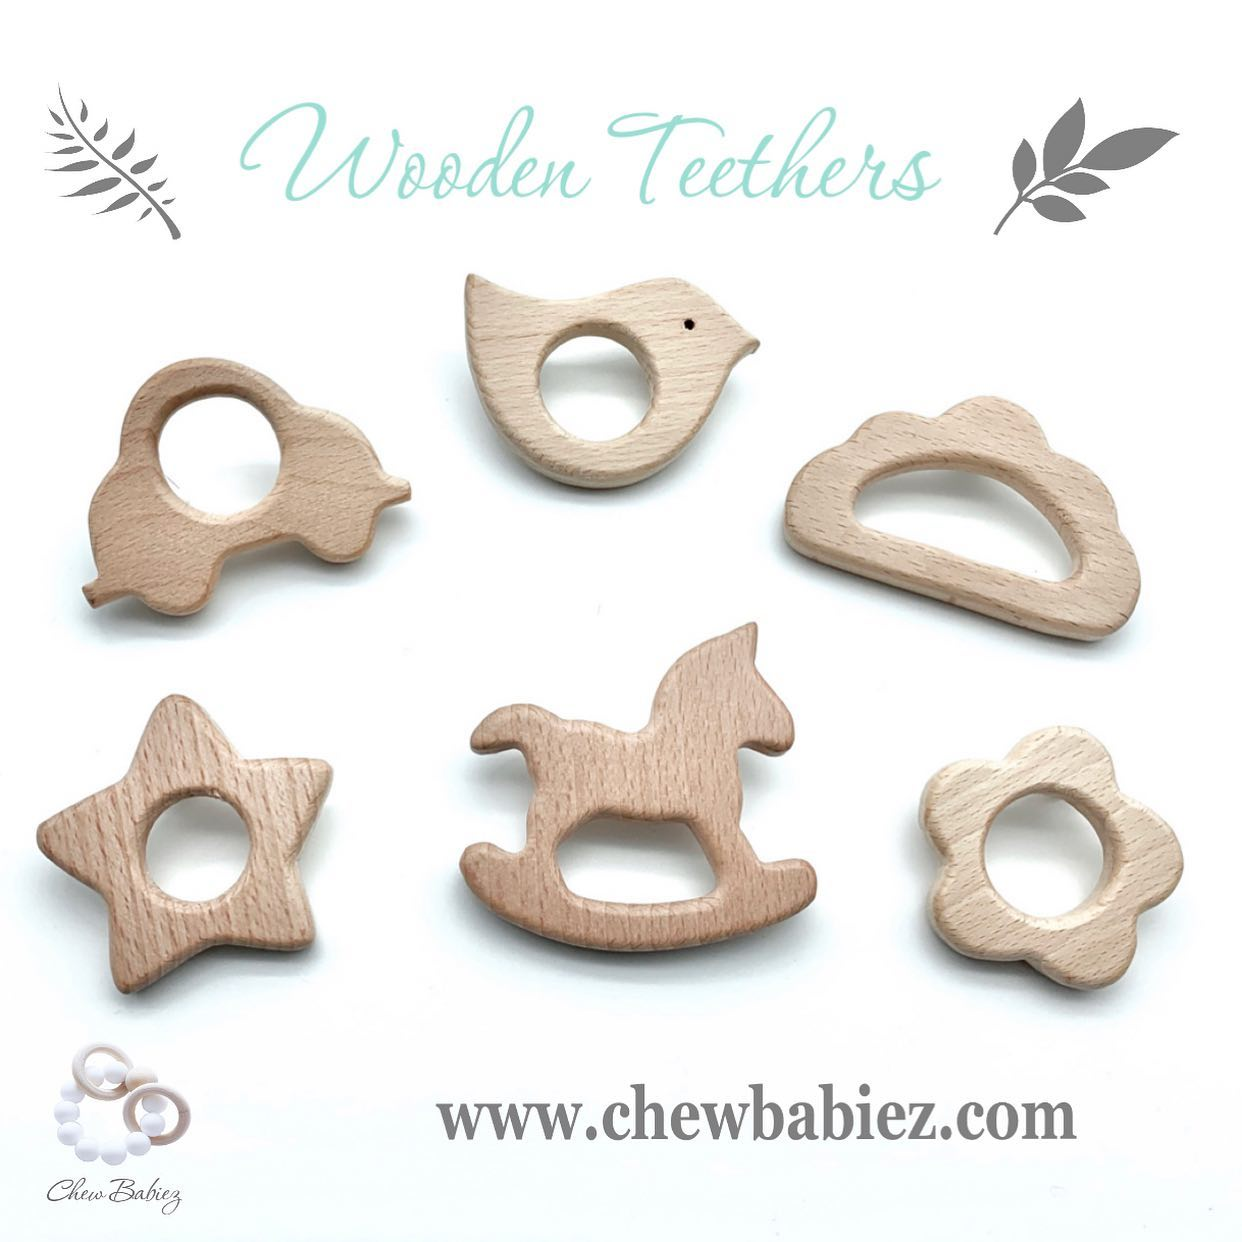 My Wooden Teething Rattle